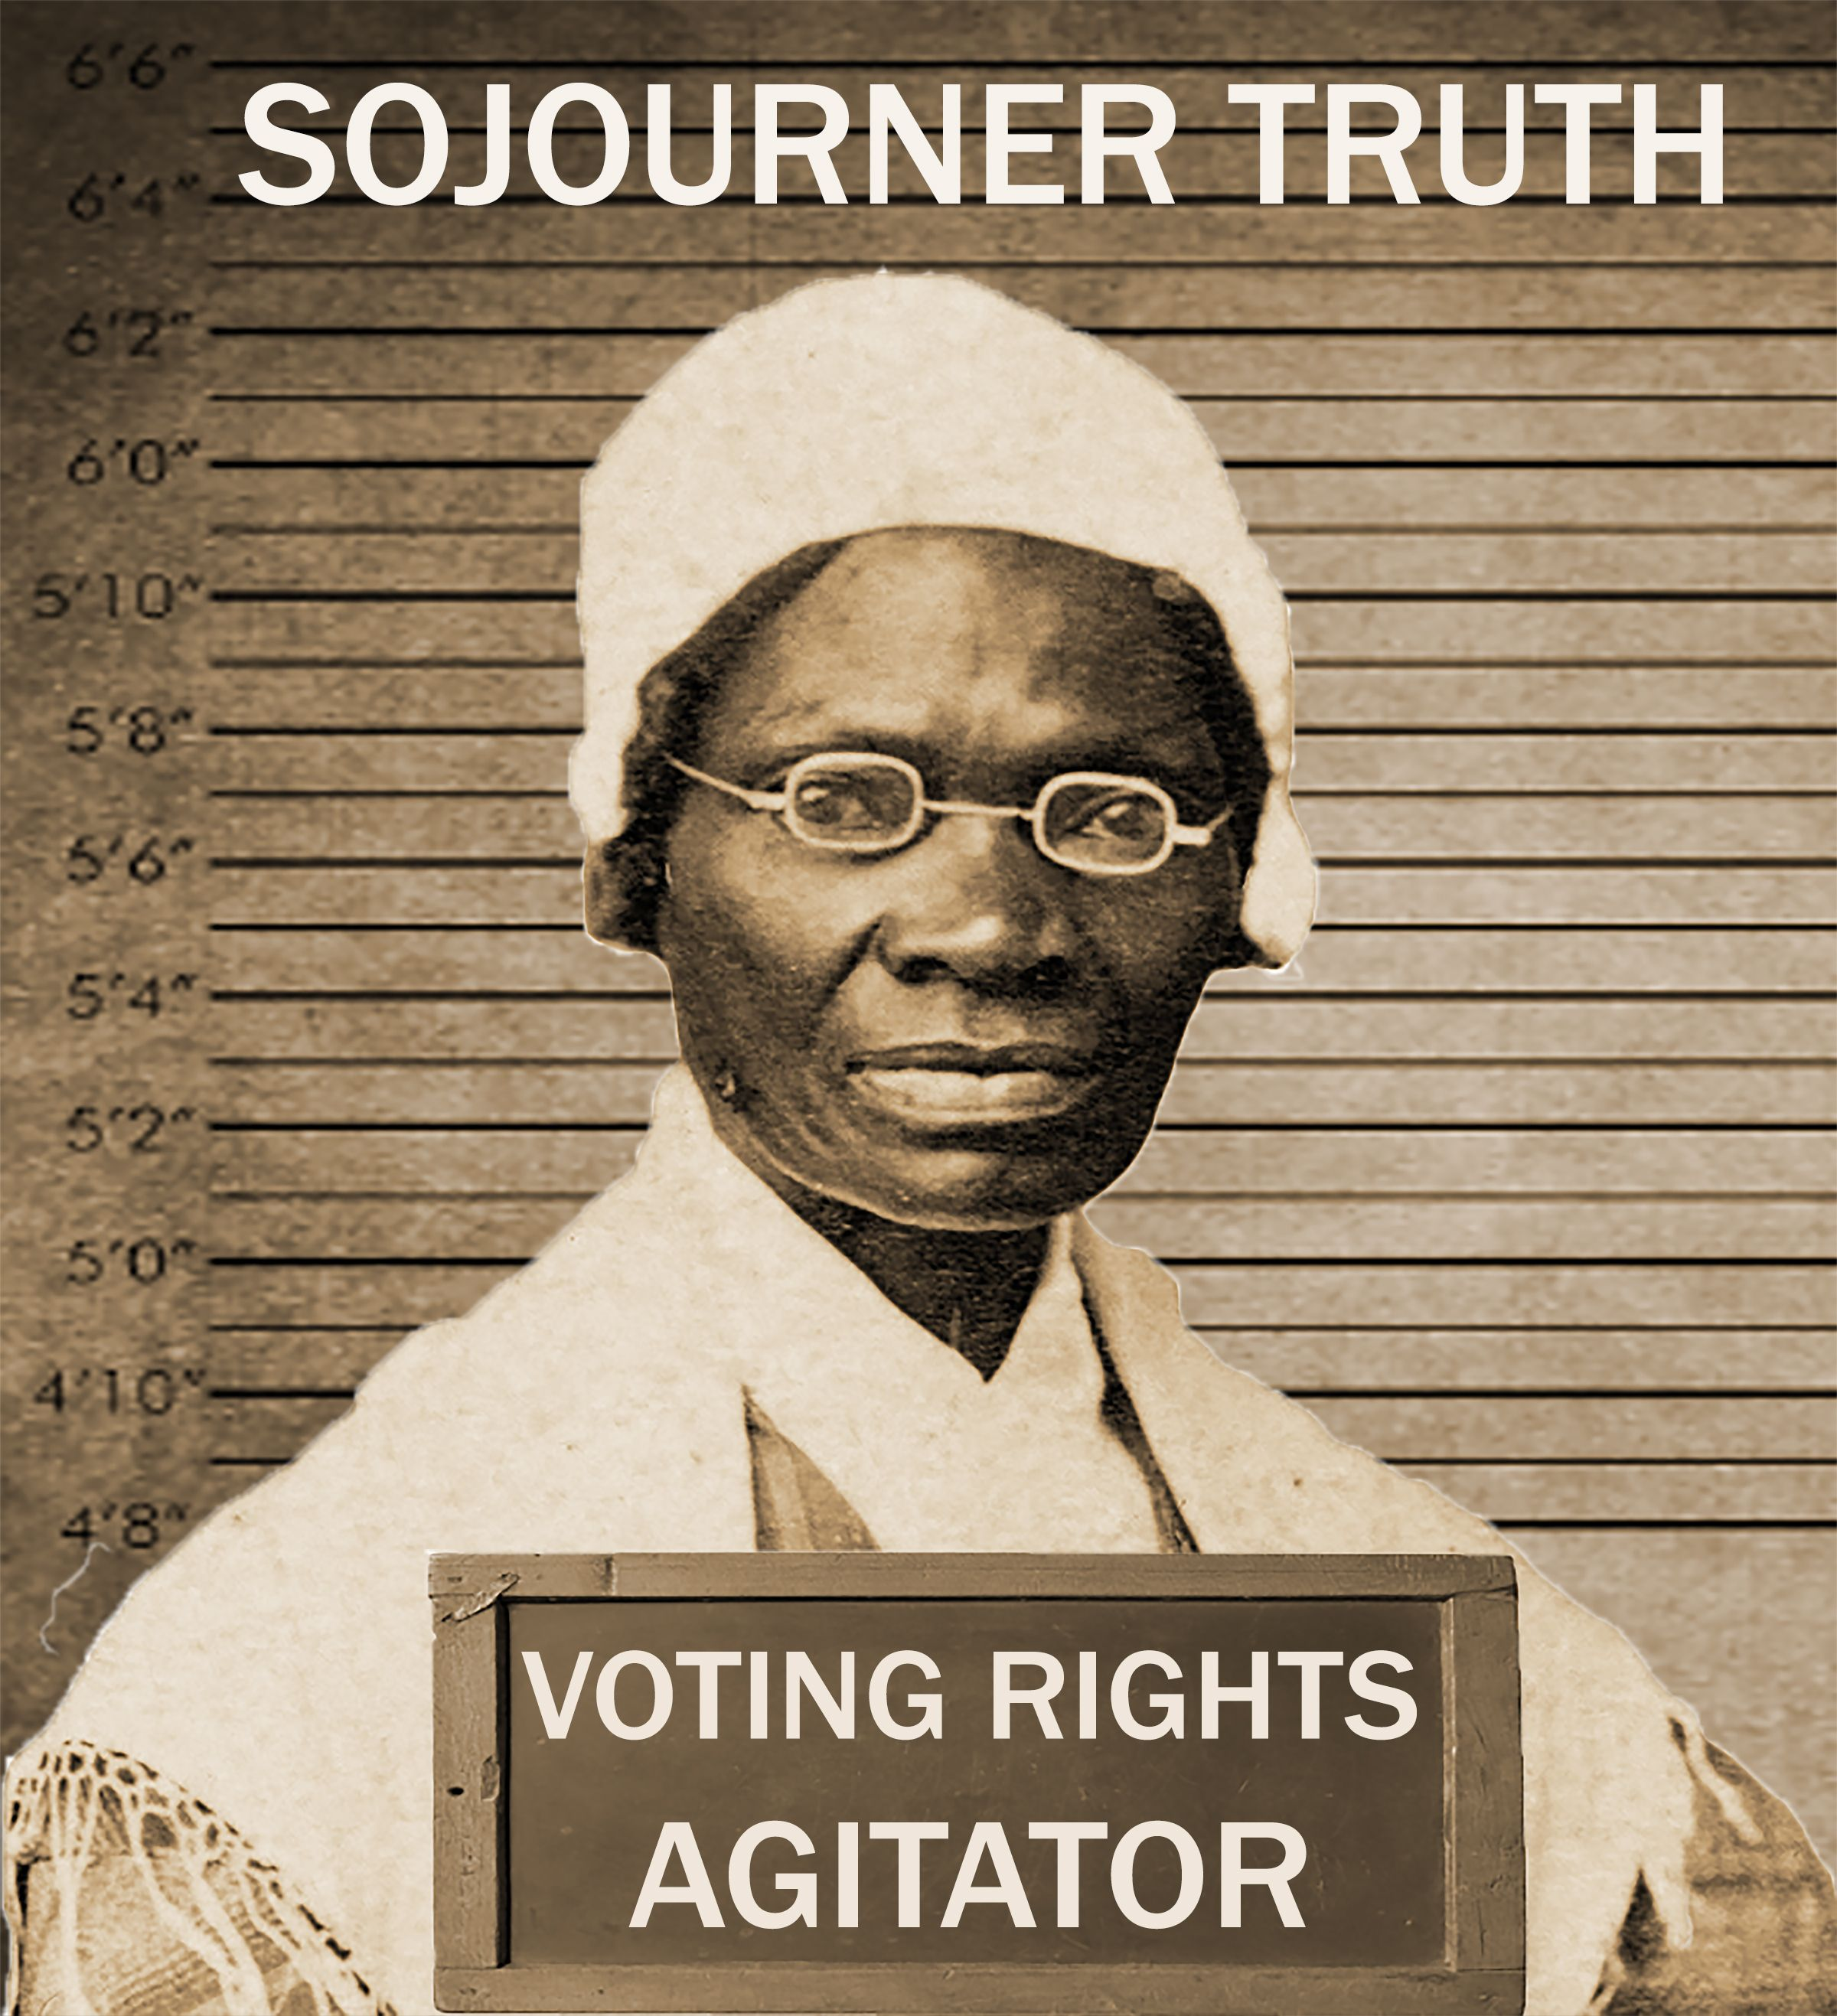 sojourner truth fought for women s right to vote what will you do sojourner truth fought for women s right to vote what will you do to carry on